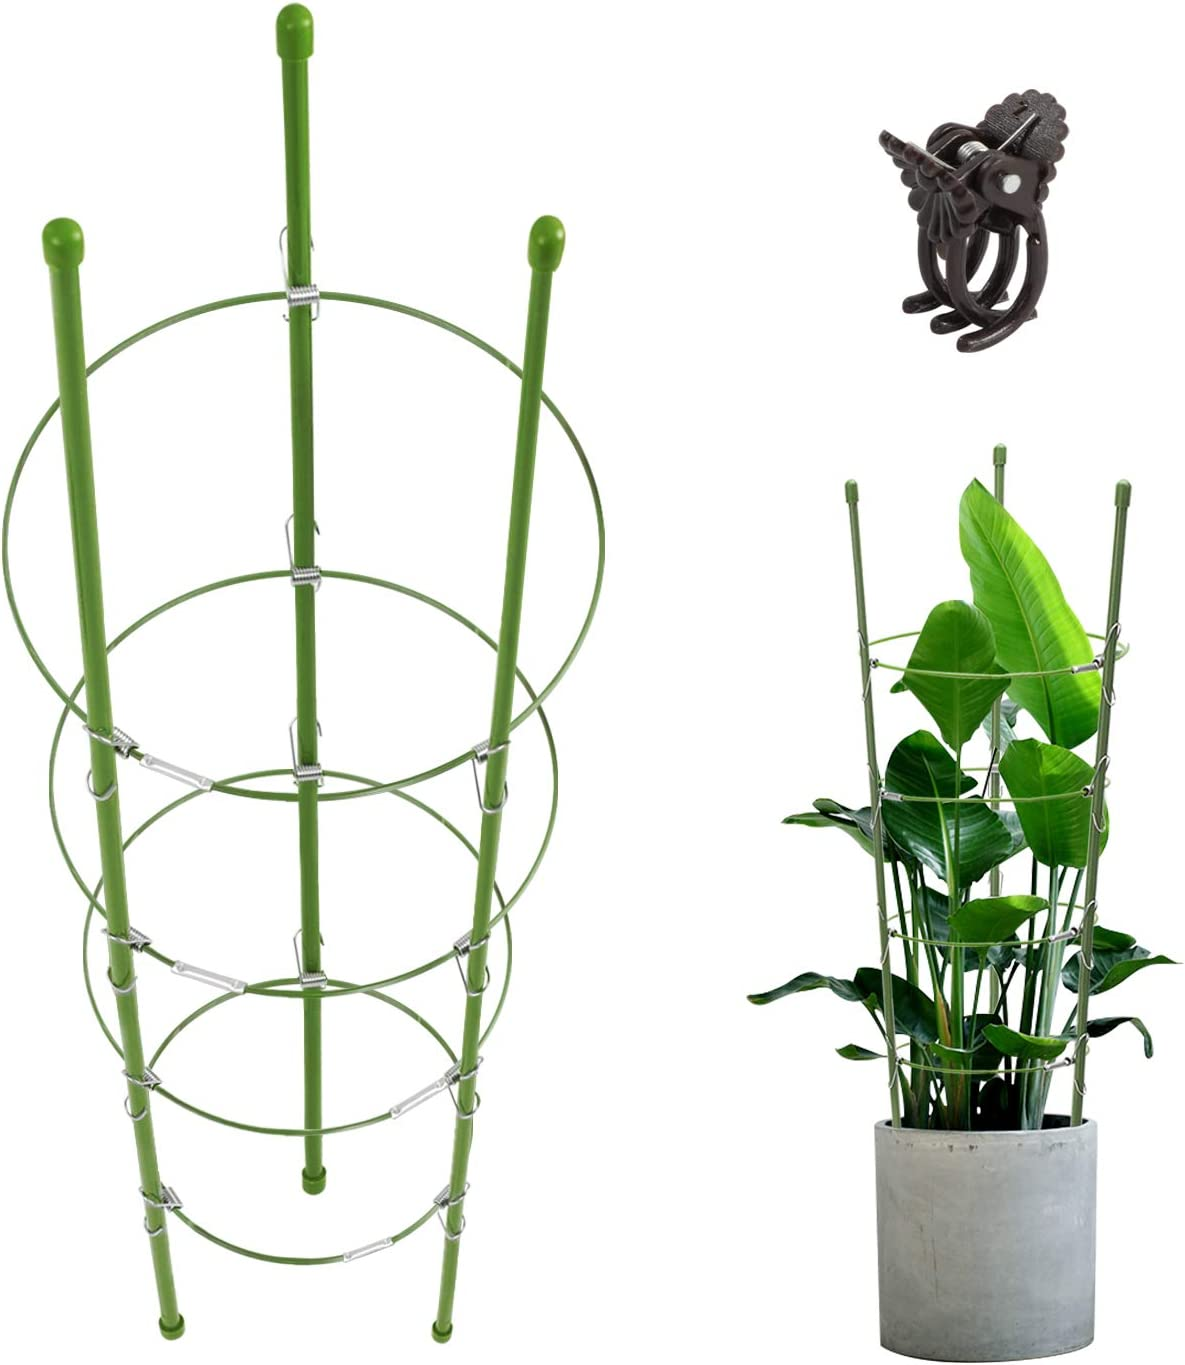 CEED4U 3 Packs 30 Inches Small Plant Support Cages Garden Support Rings with 12 Pcs Plant Clips, 4 Adjustable Rings, Plant Support for Orchids, Tomato, Climbing Plants Vegetables Flowers